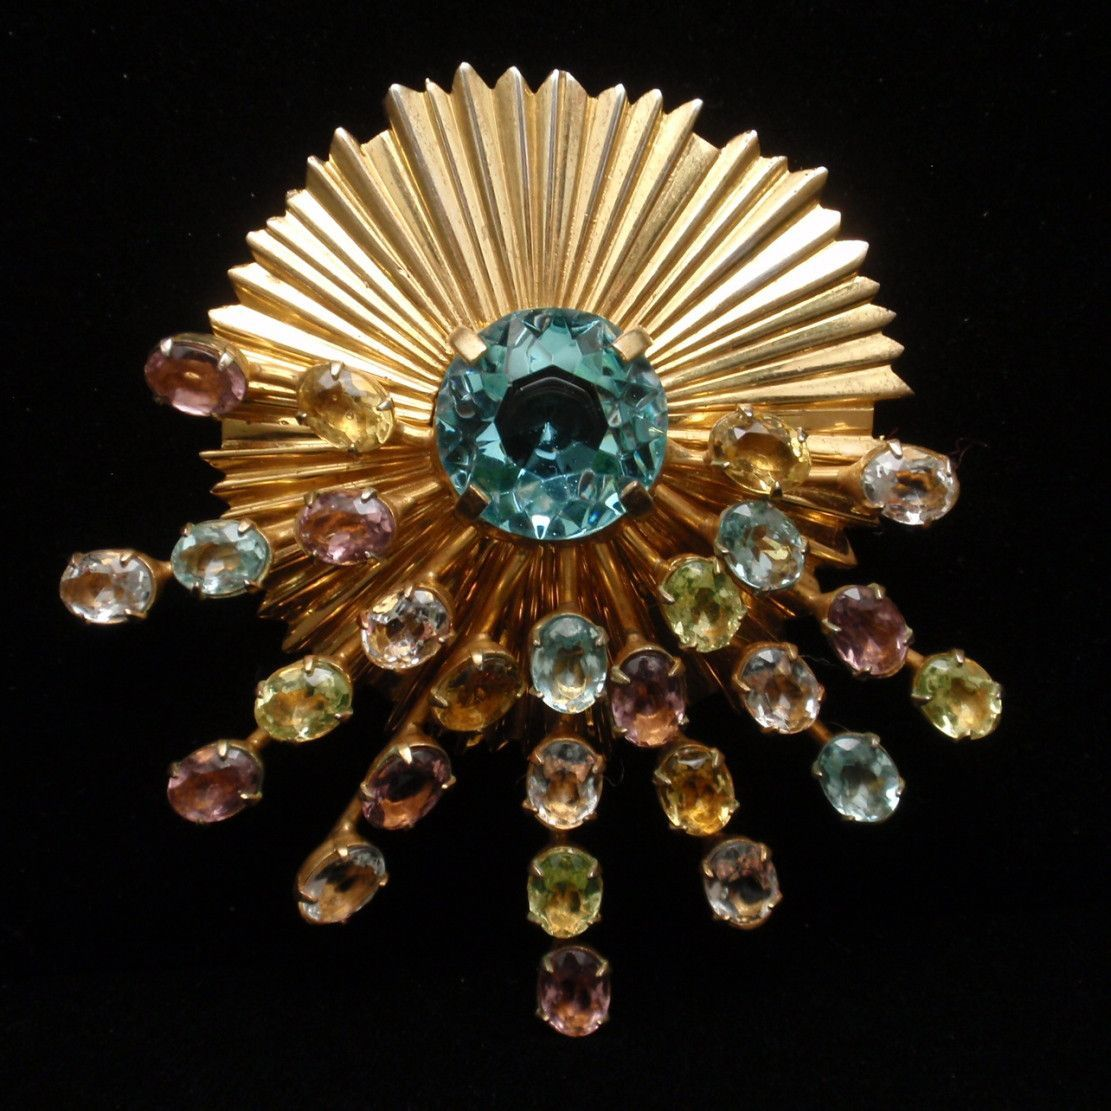 Lovely brooch in gold tone metal and multi-colored rhinestones. The base has a fluted design and is adorned with spikes or a starburst of multi-colored pastel stones. The overall look is very eye-catc